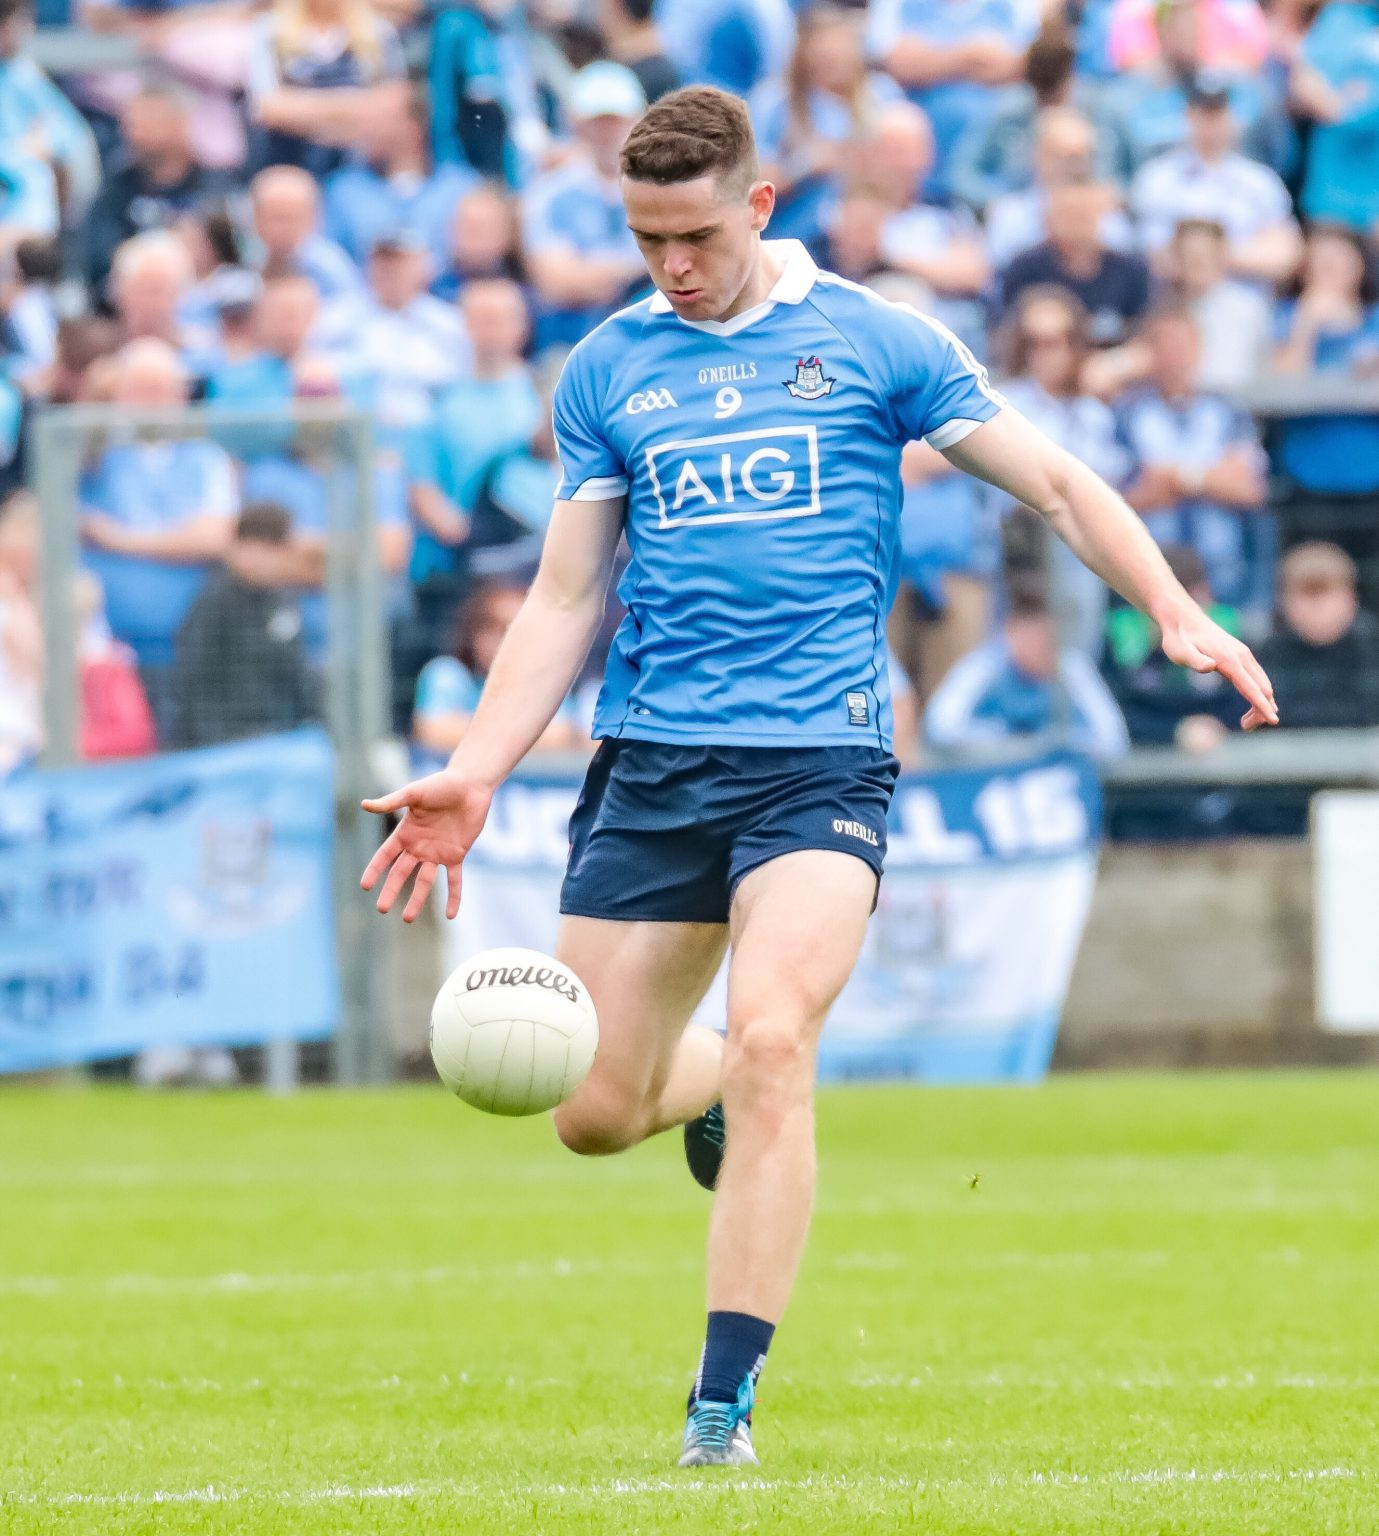 Dublin footballer Brian Fenton In A Sky Blue Jersey Kicking A White Ball Put In man of the match performance as Dublin demolish Longford